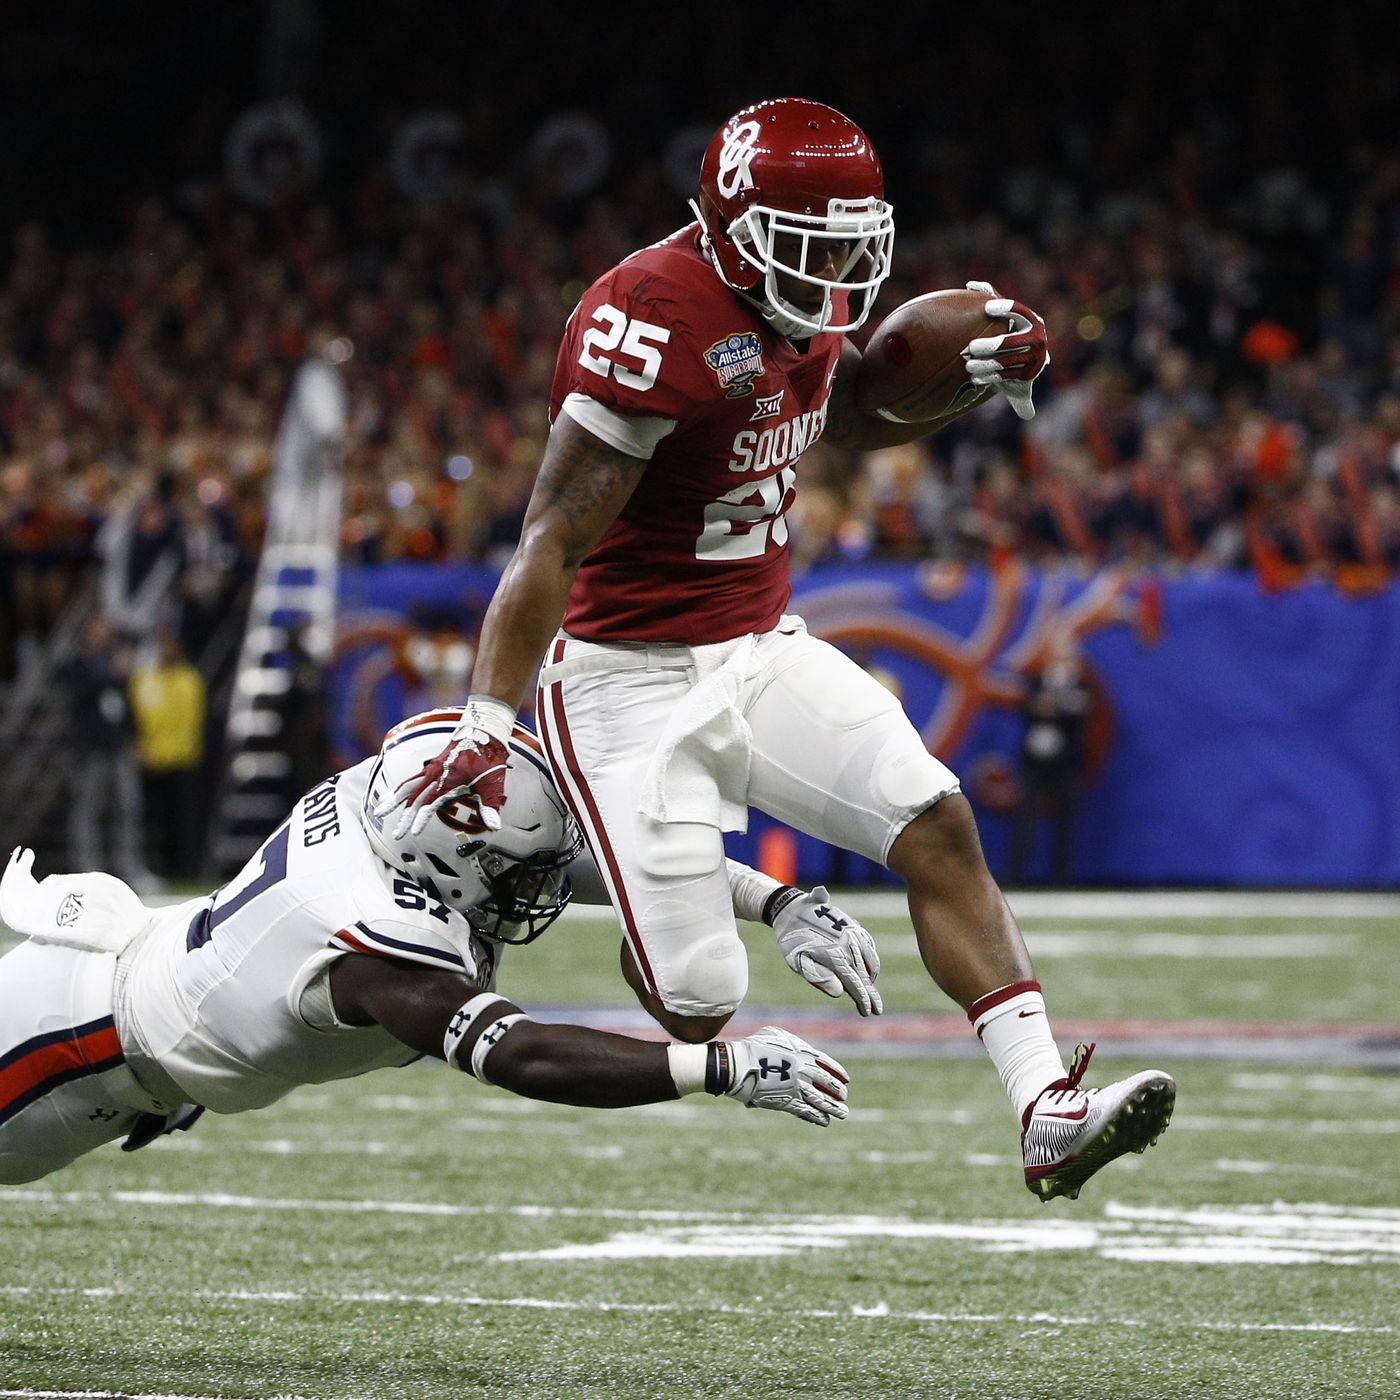 Joe Mixon brings his troubled history and huge talent to